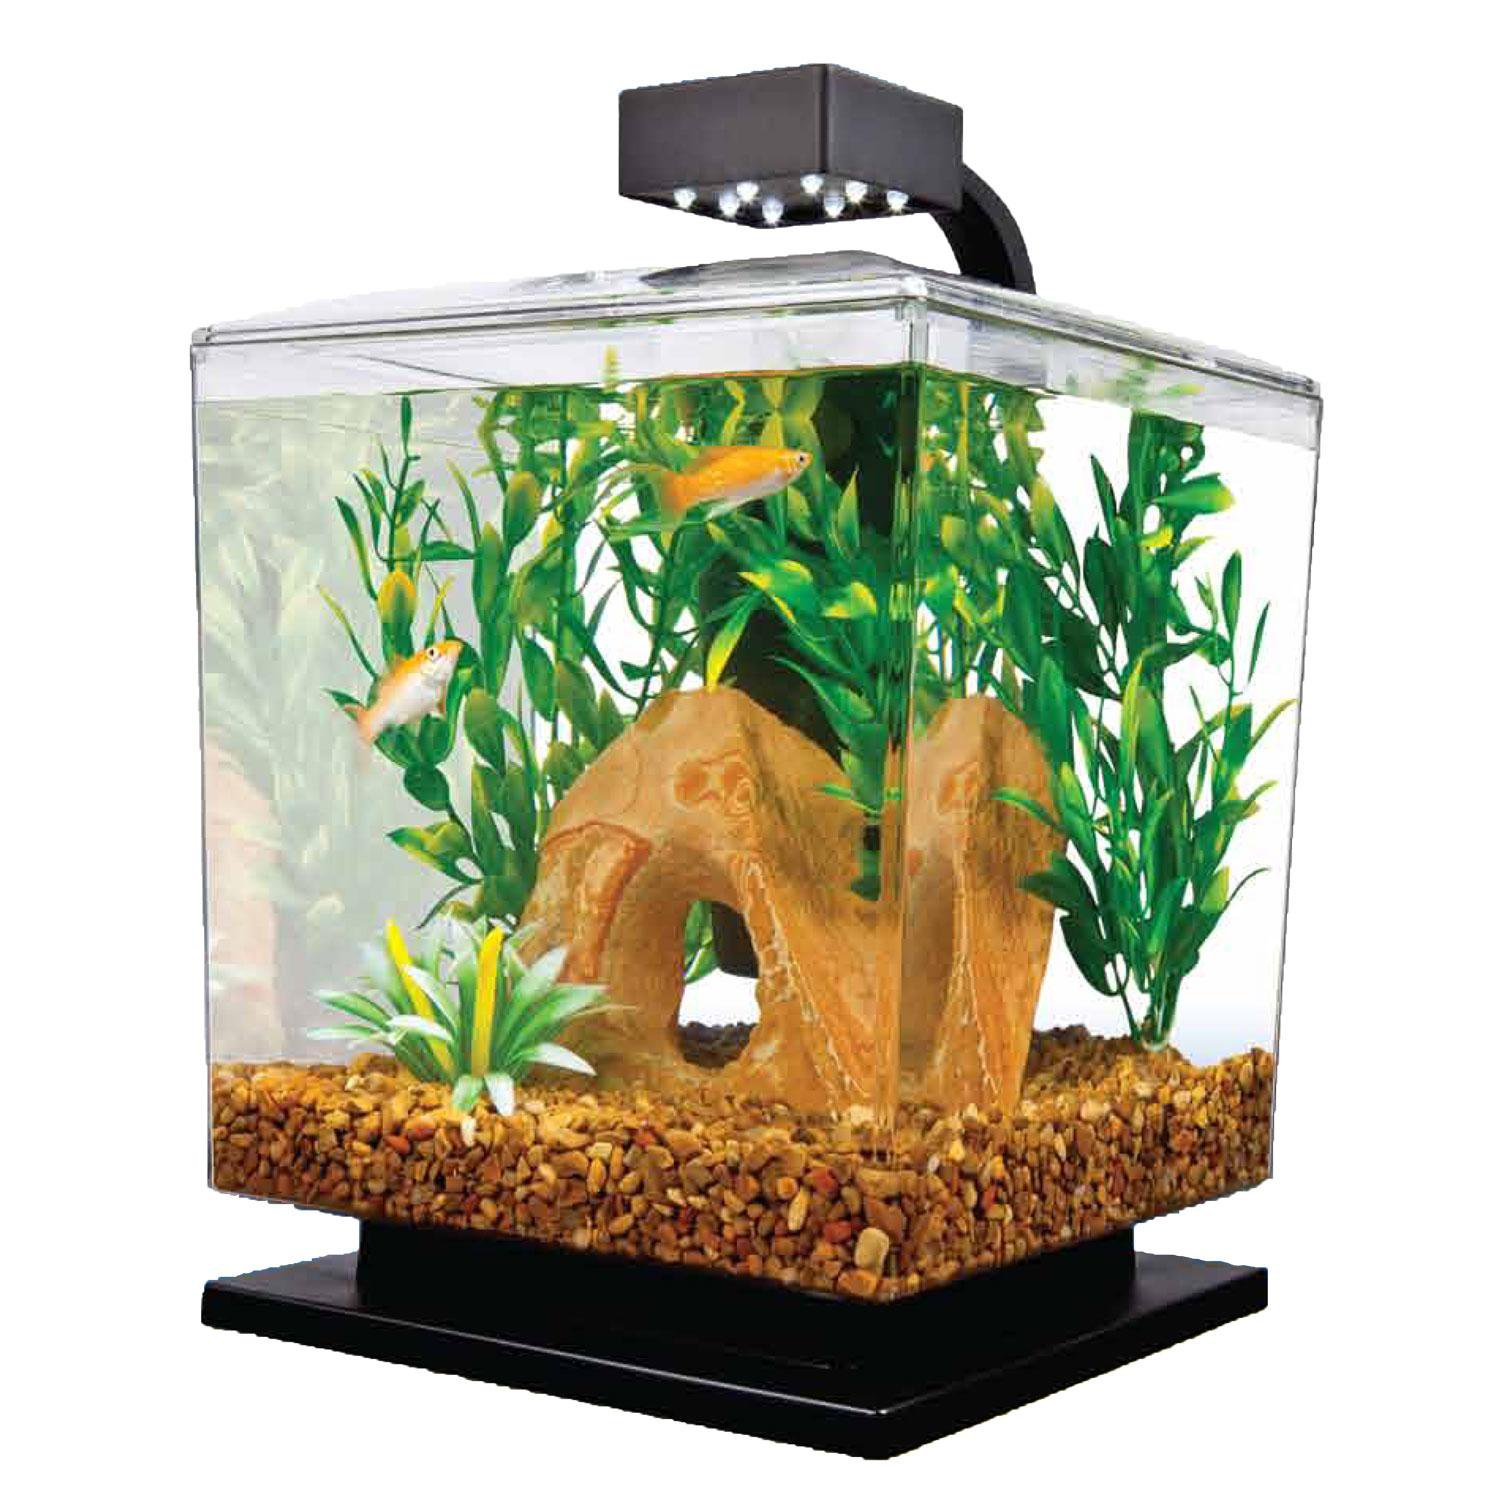 Fish aquarium for sale in karachi - Saltwater Aquarium Kit Fish Tank Tetra 1 5 Gallon Led Desktop Aquarium Kit